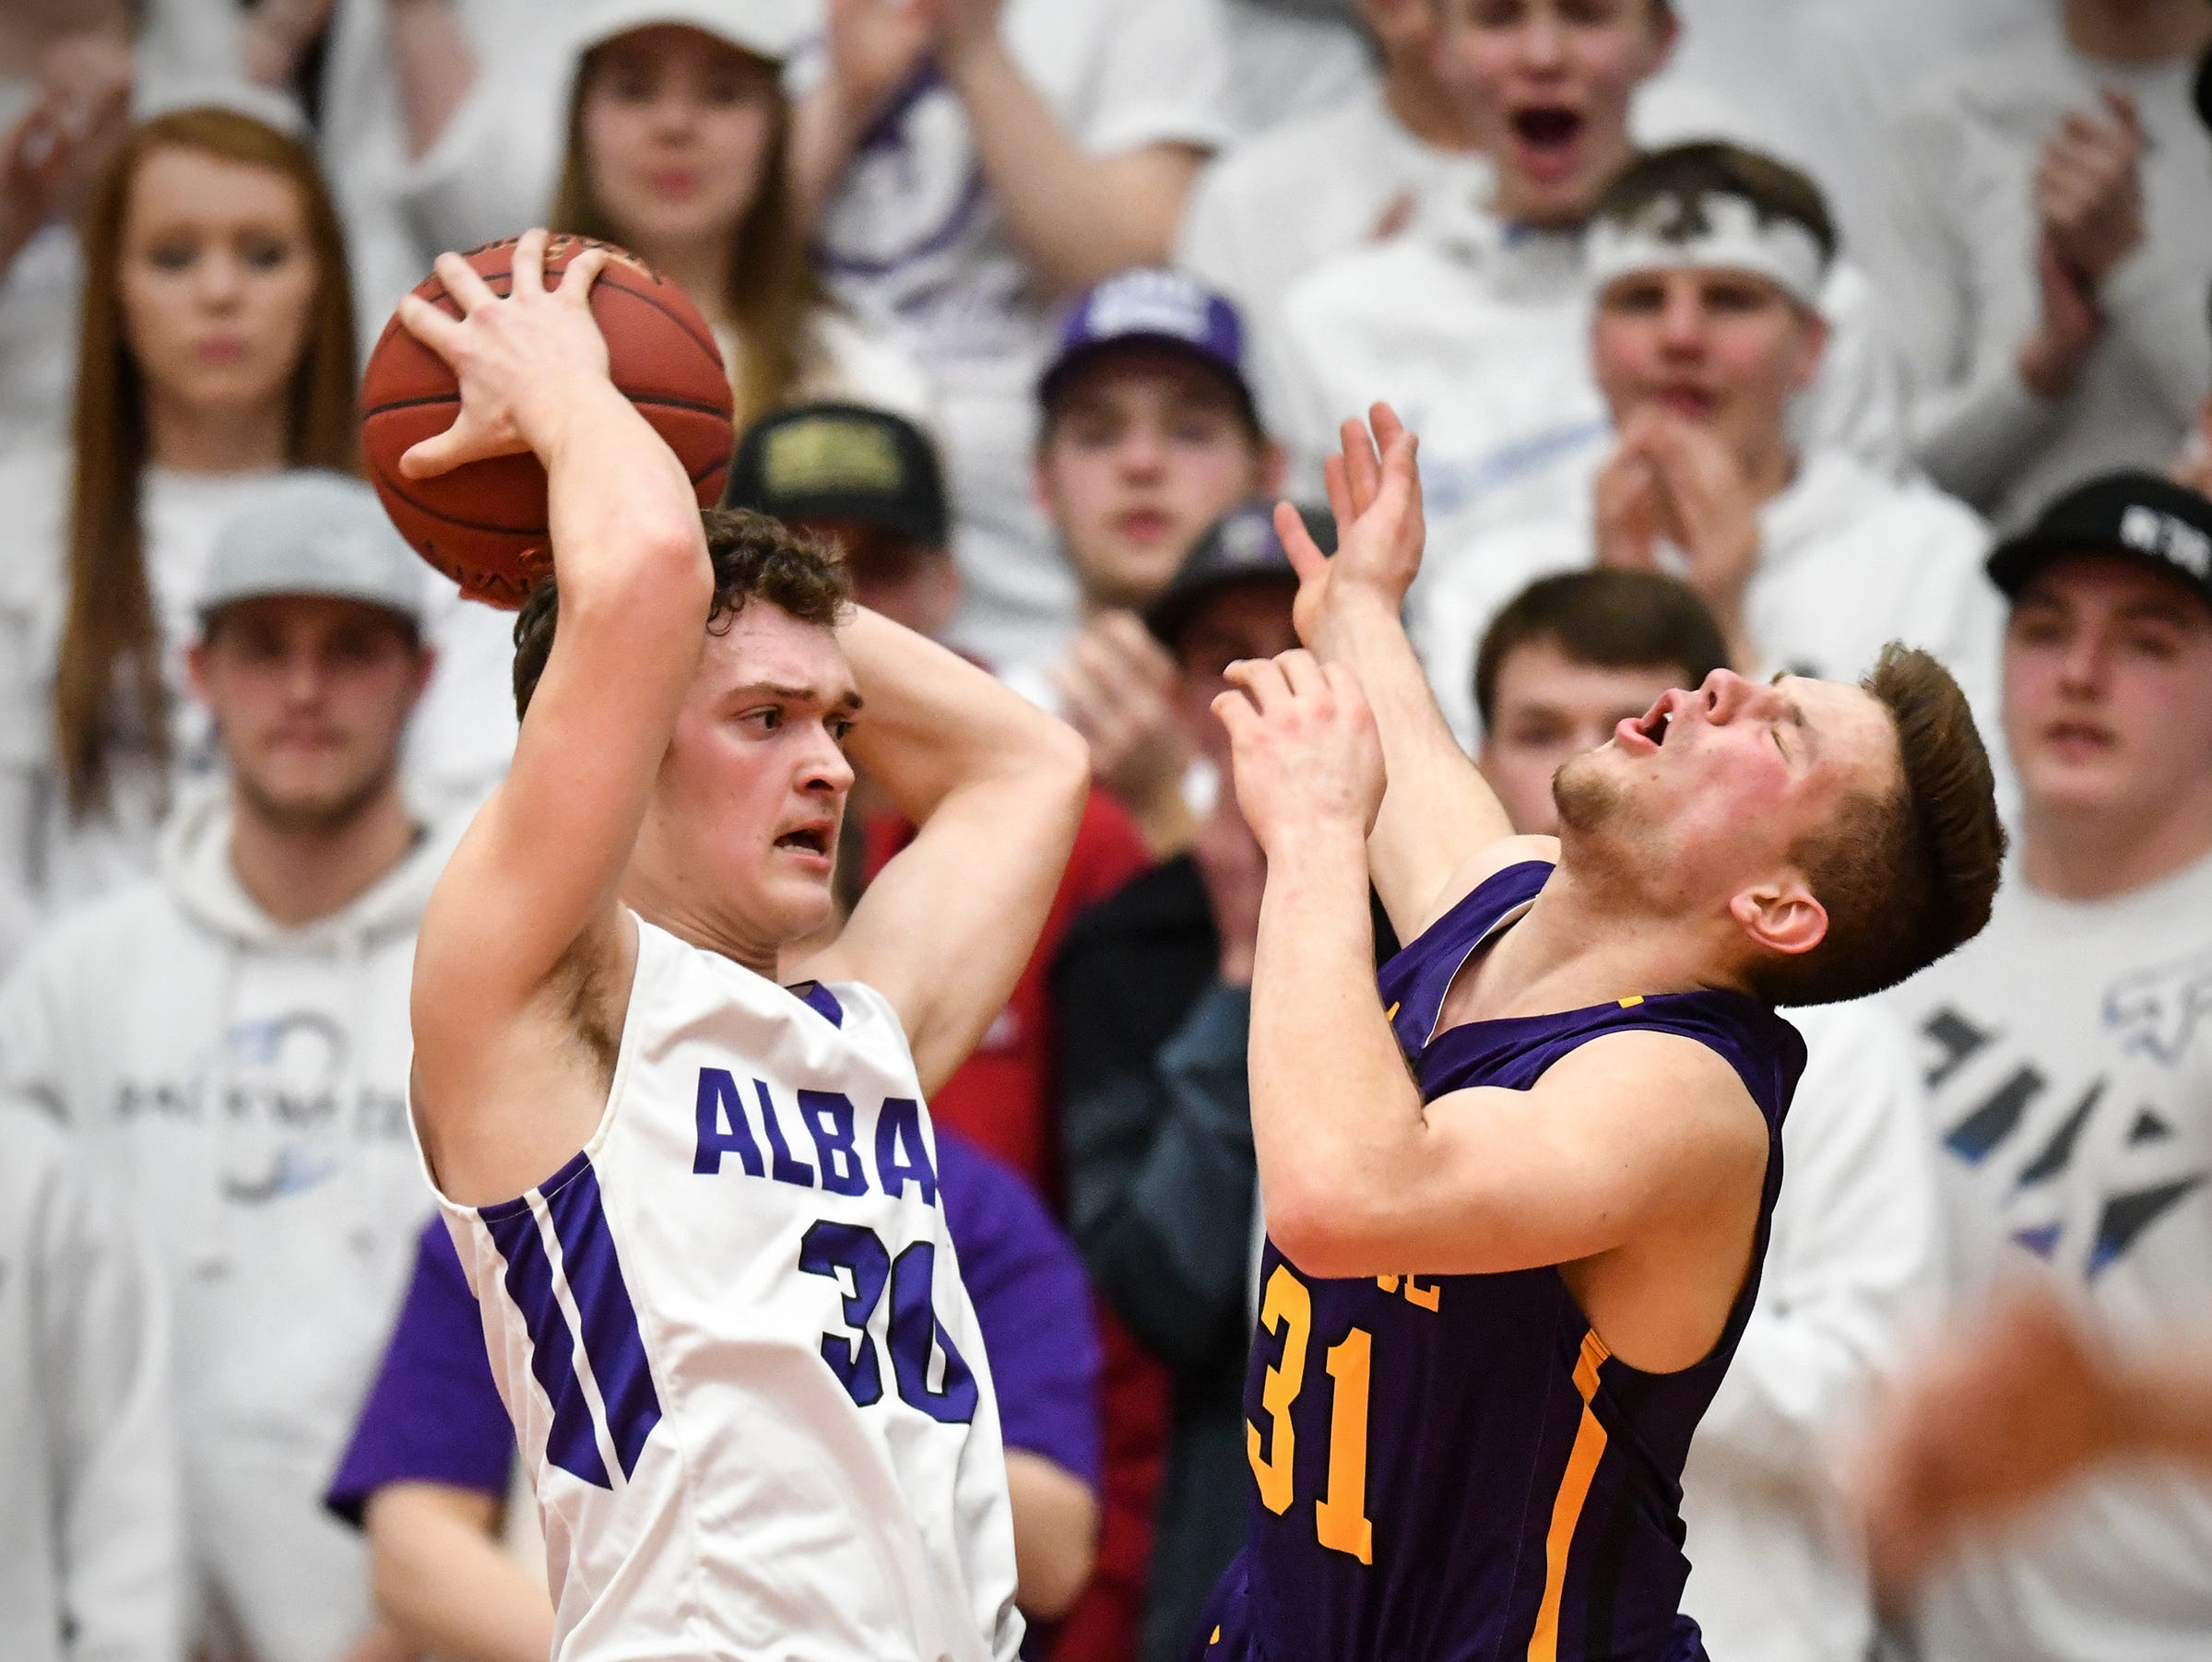 Albany's Ethan Navratil makes contact with Adam Helmin of Melrose during the first half of the Friday, March 15, Section 6-2A championship game at Halenbeck Hall in St. Cloud.